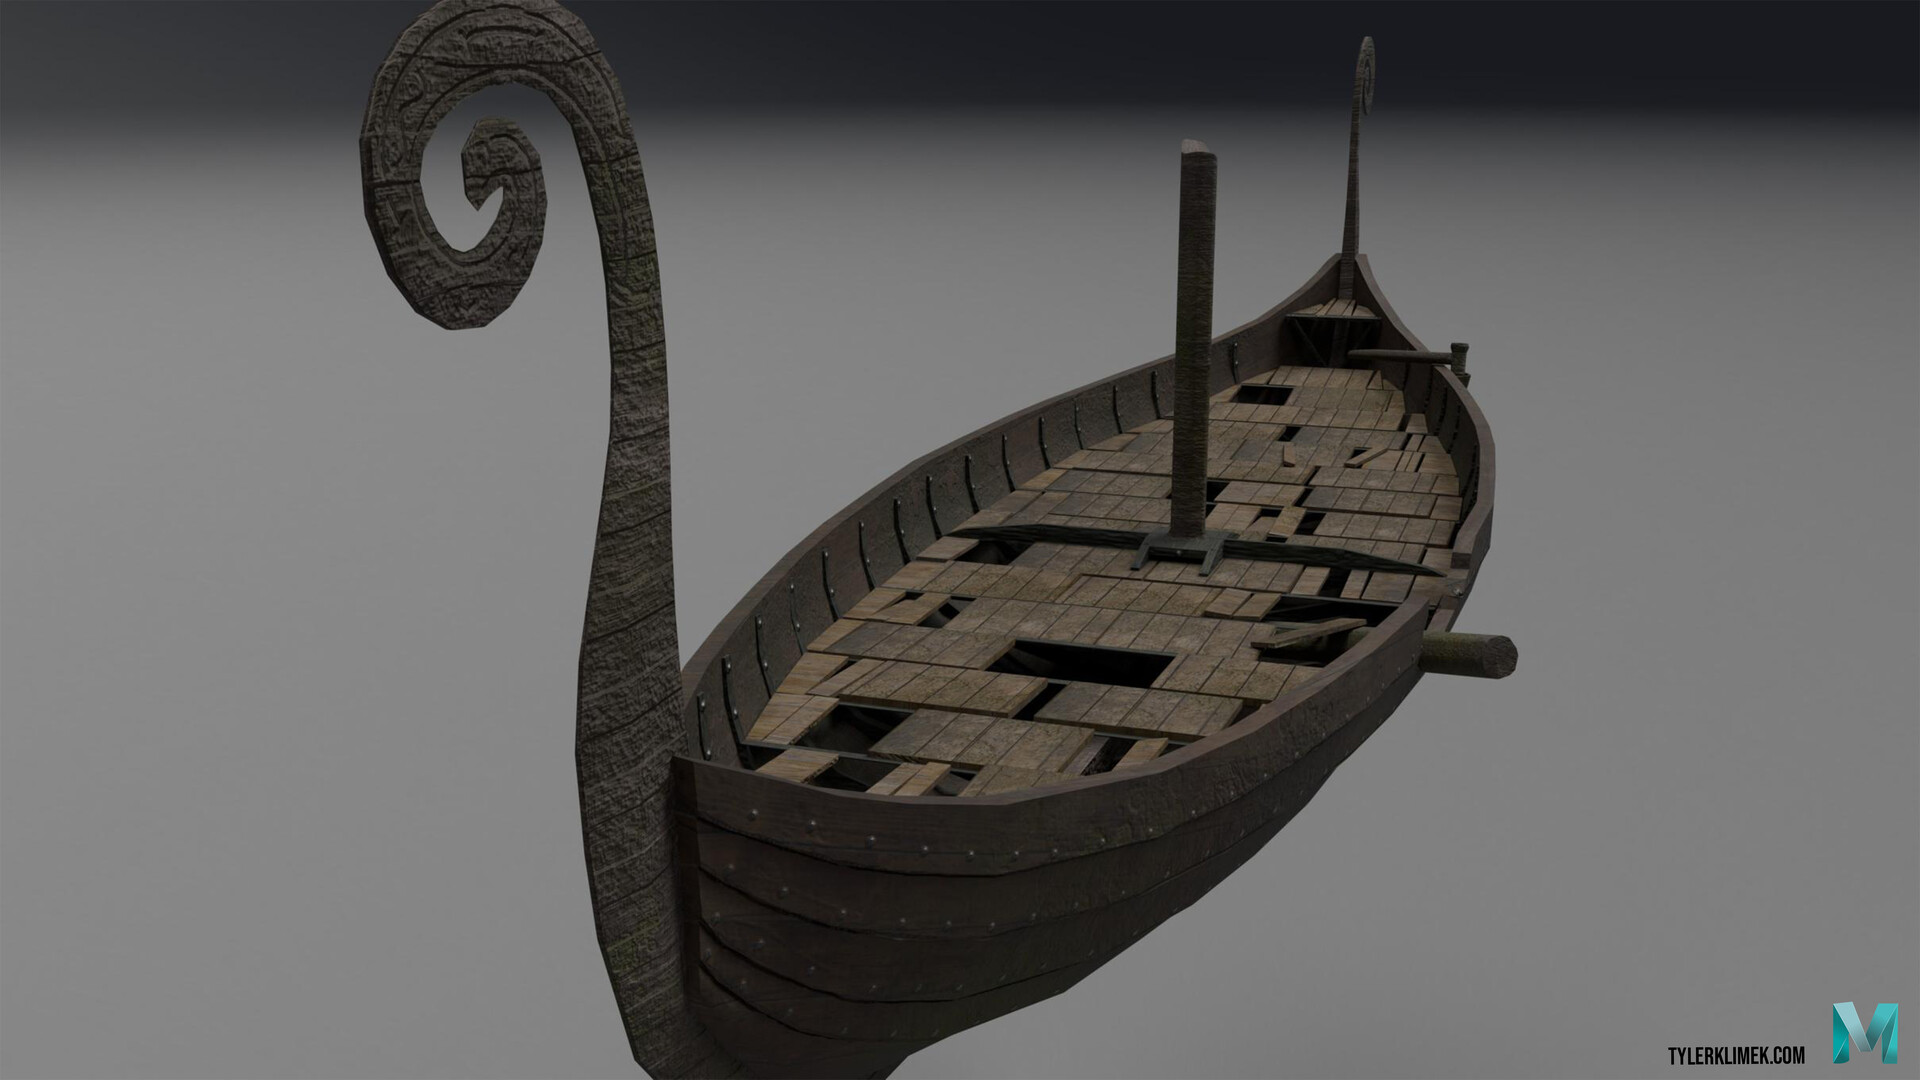 The ship was modeled in May and textured with Substance